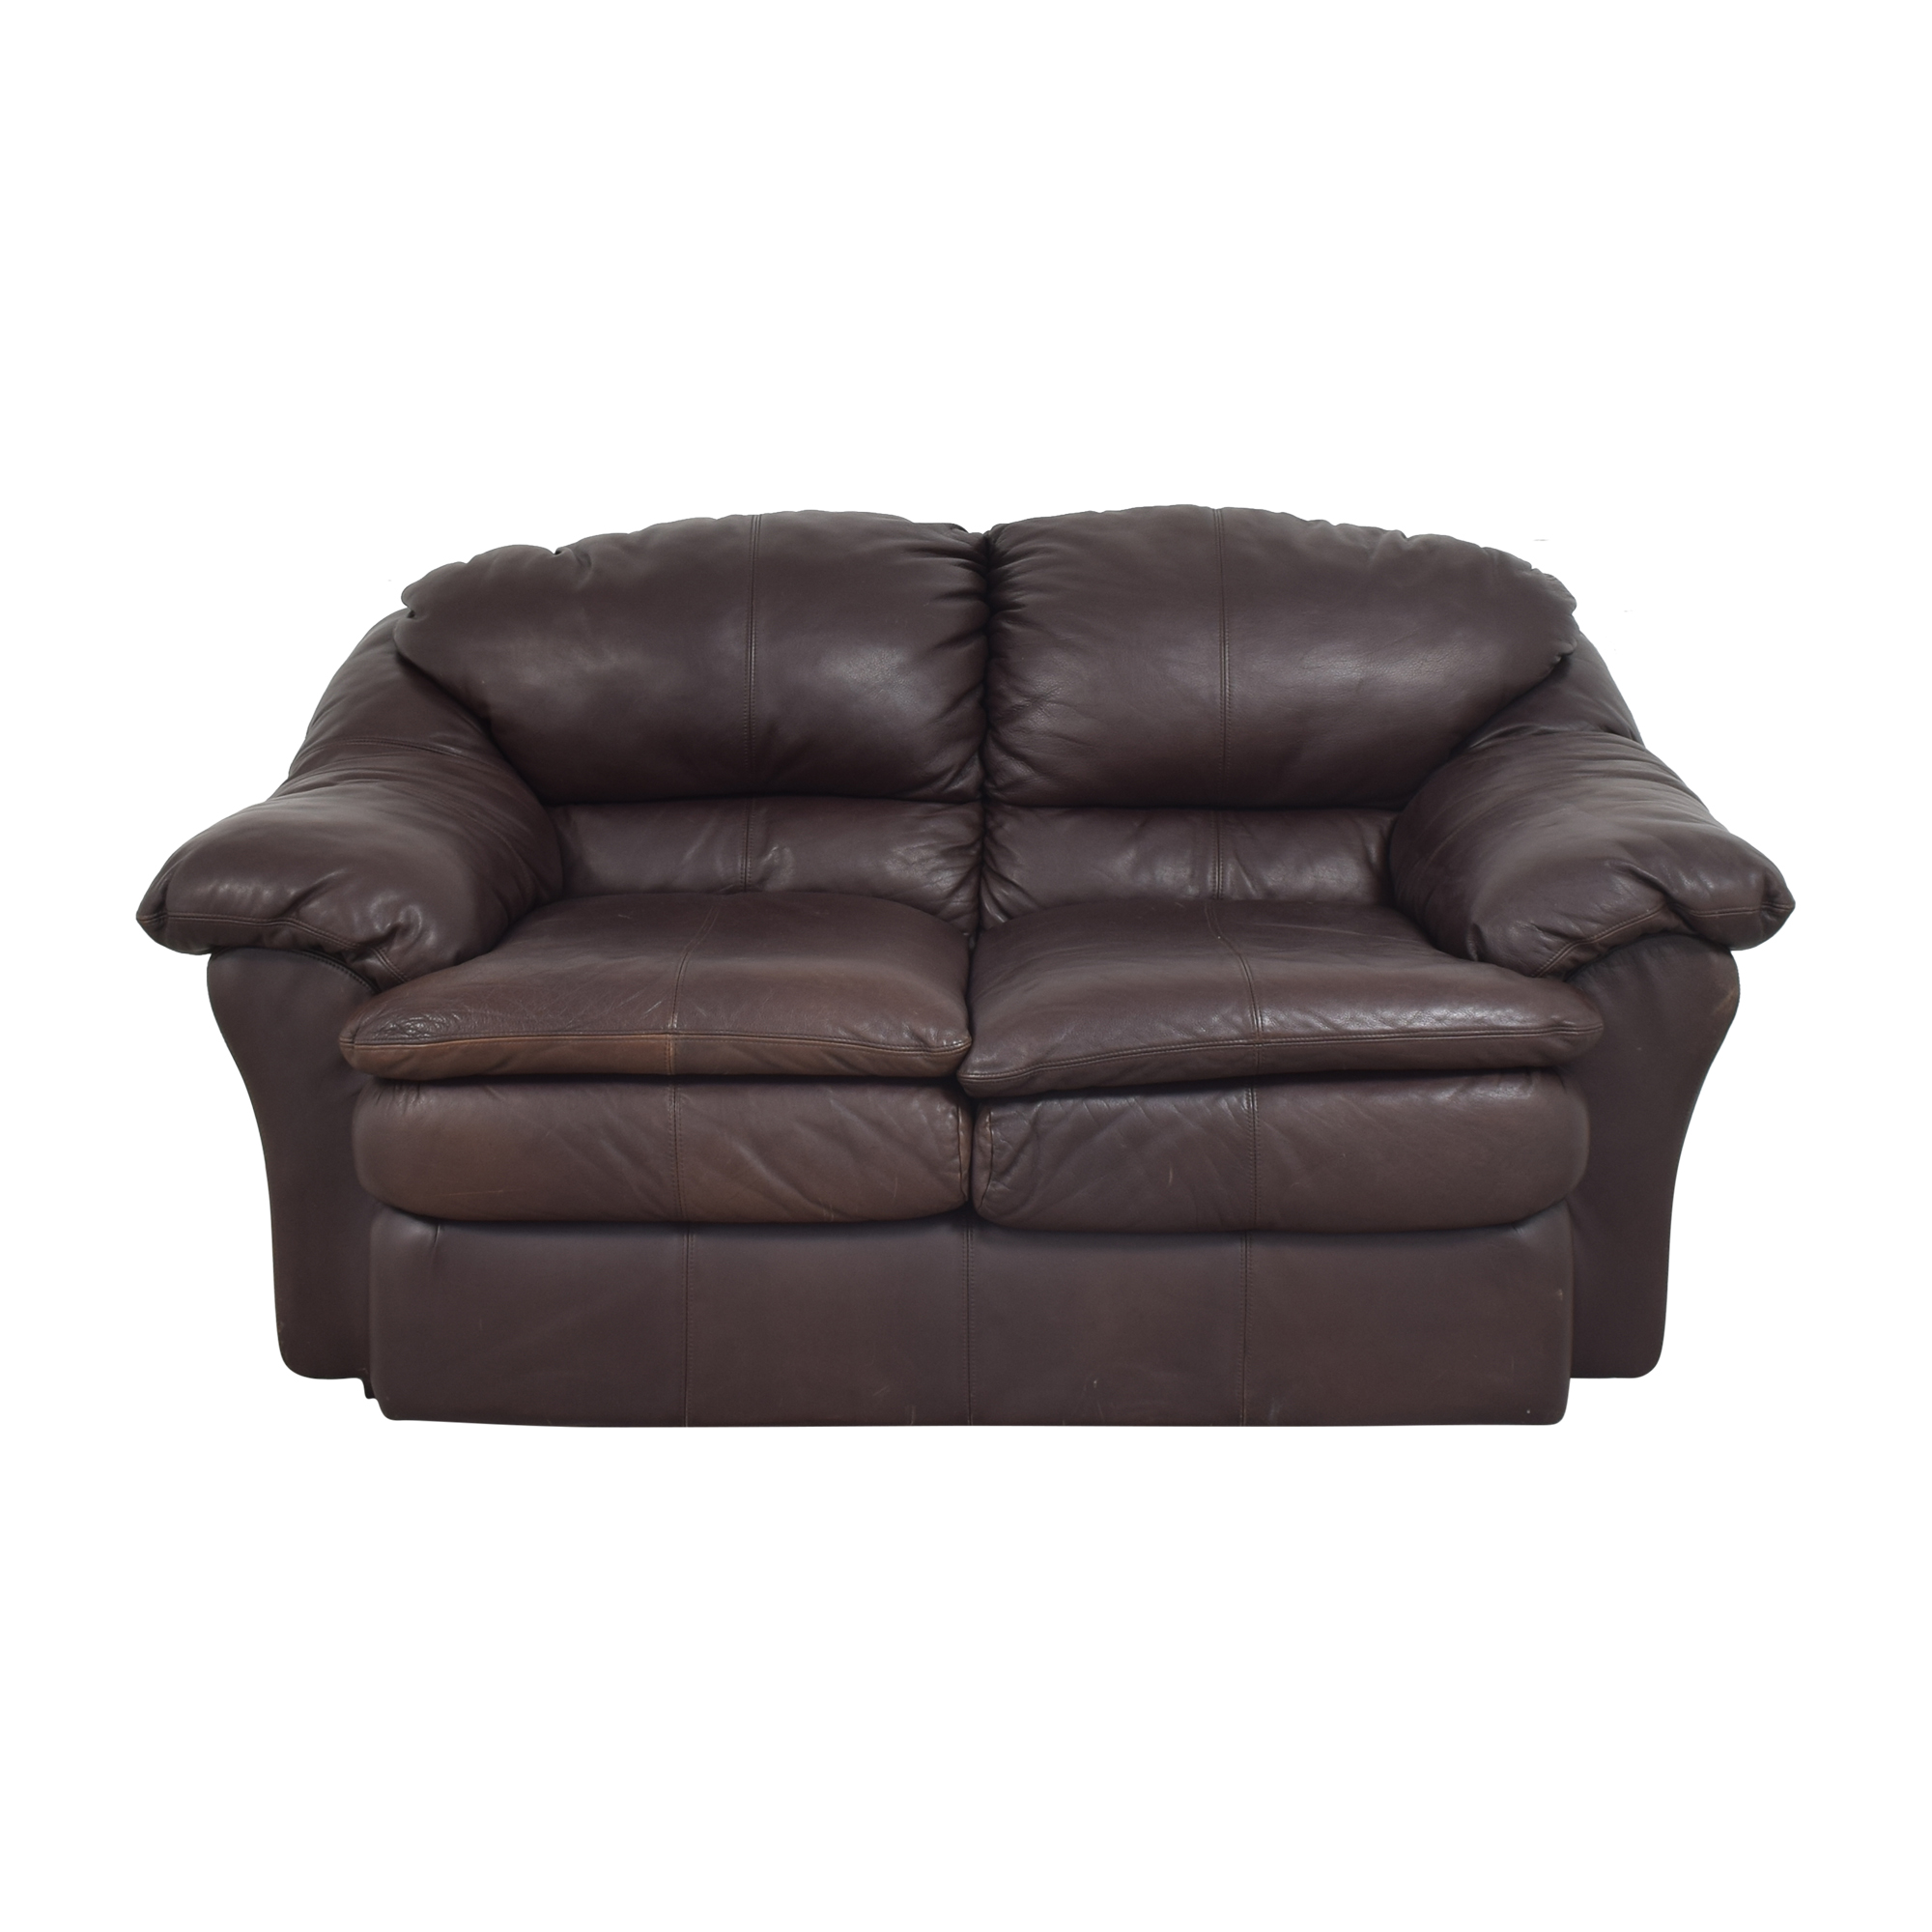 Ashley Furniture Ashley Furniture Loveseat Sofas